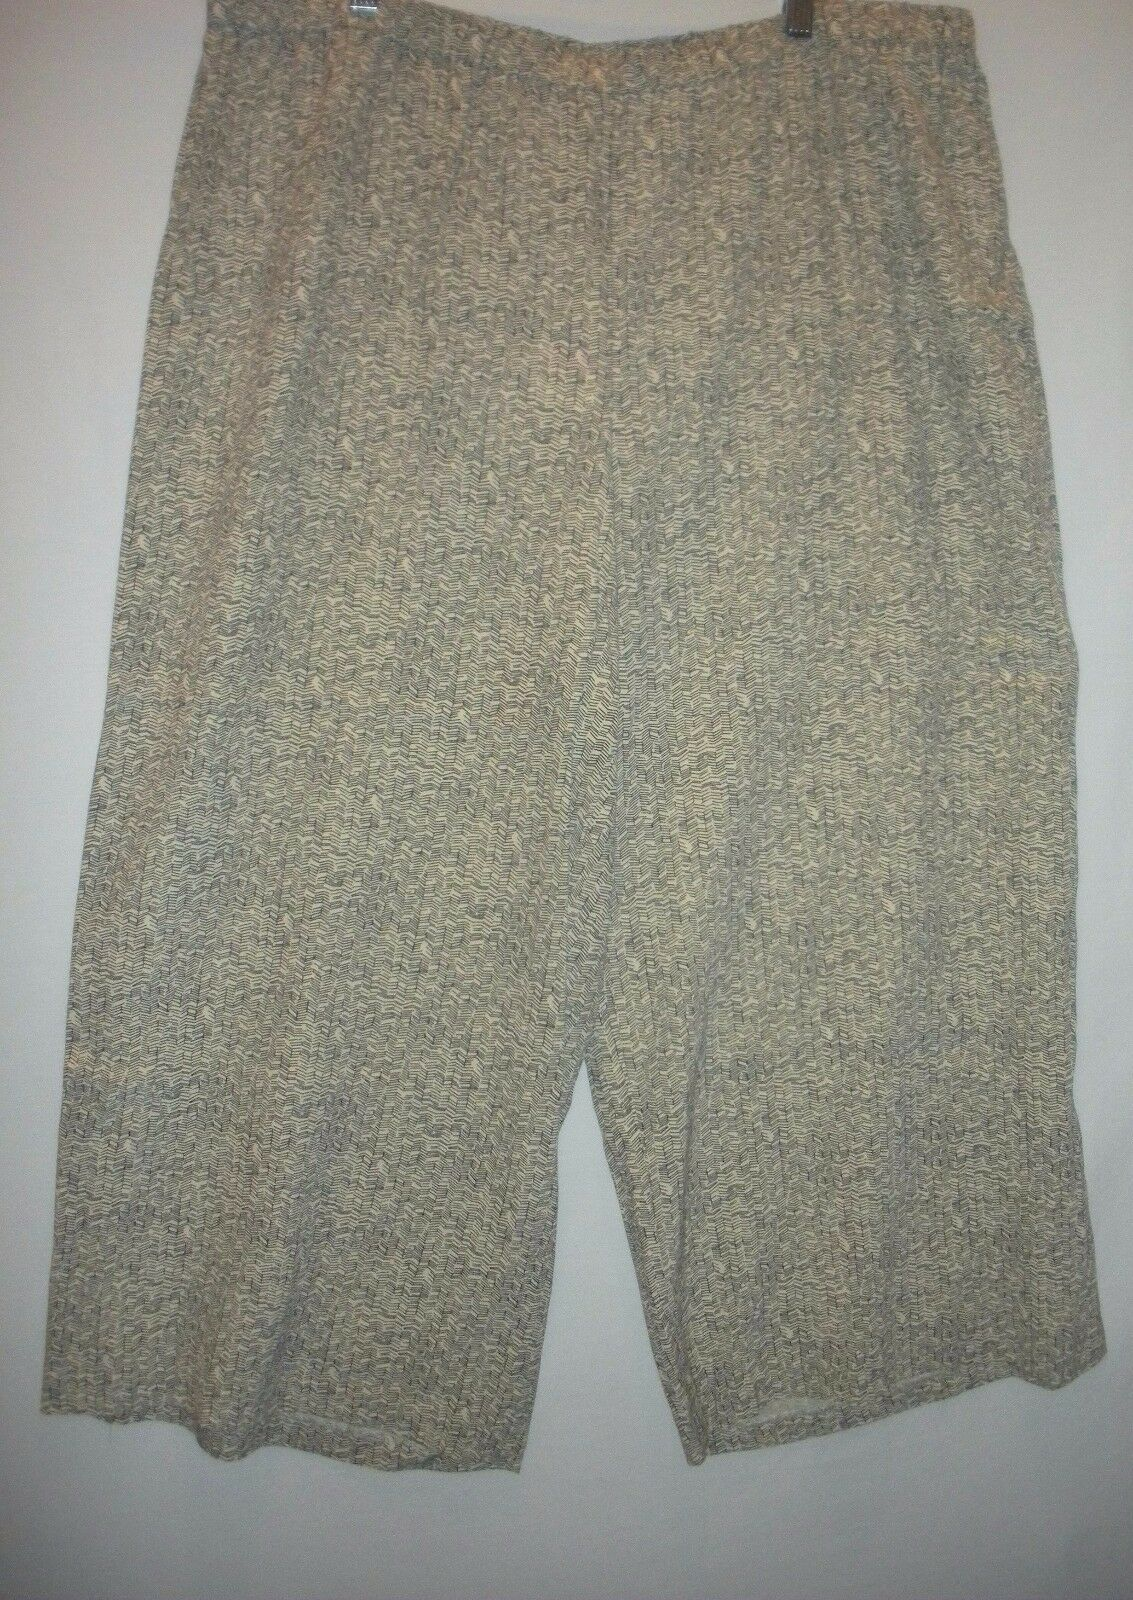 NEW with TAGS  EILEEN FISHER Wide Cropped Pant Size XL, MSRP